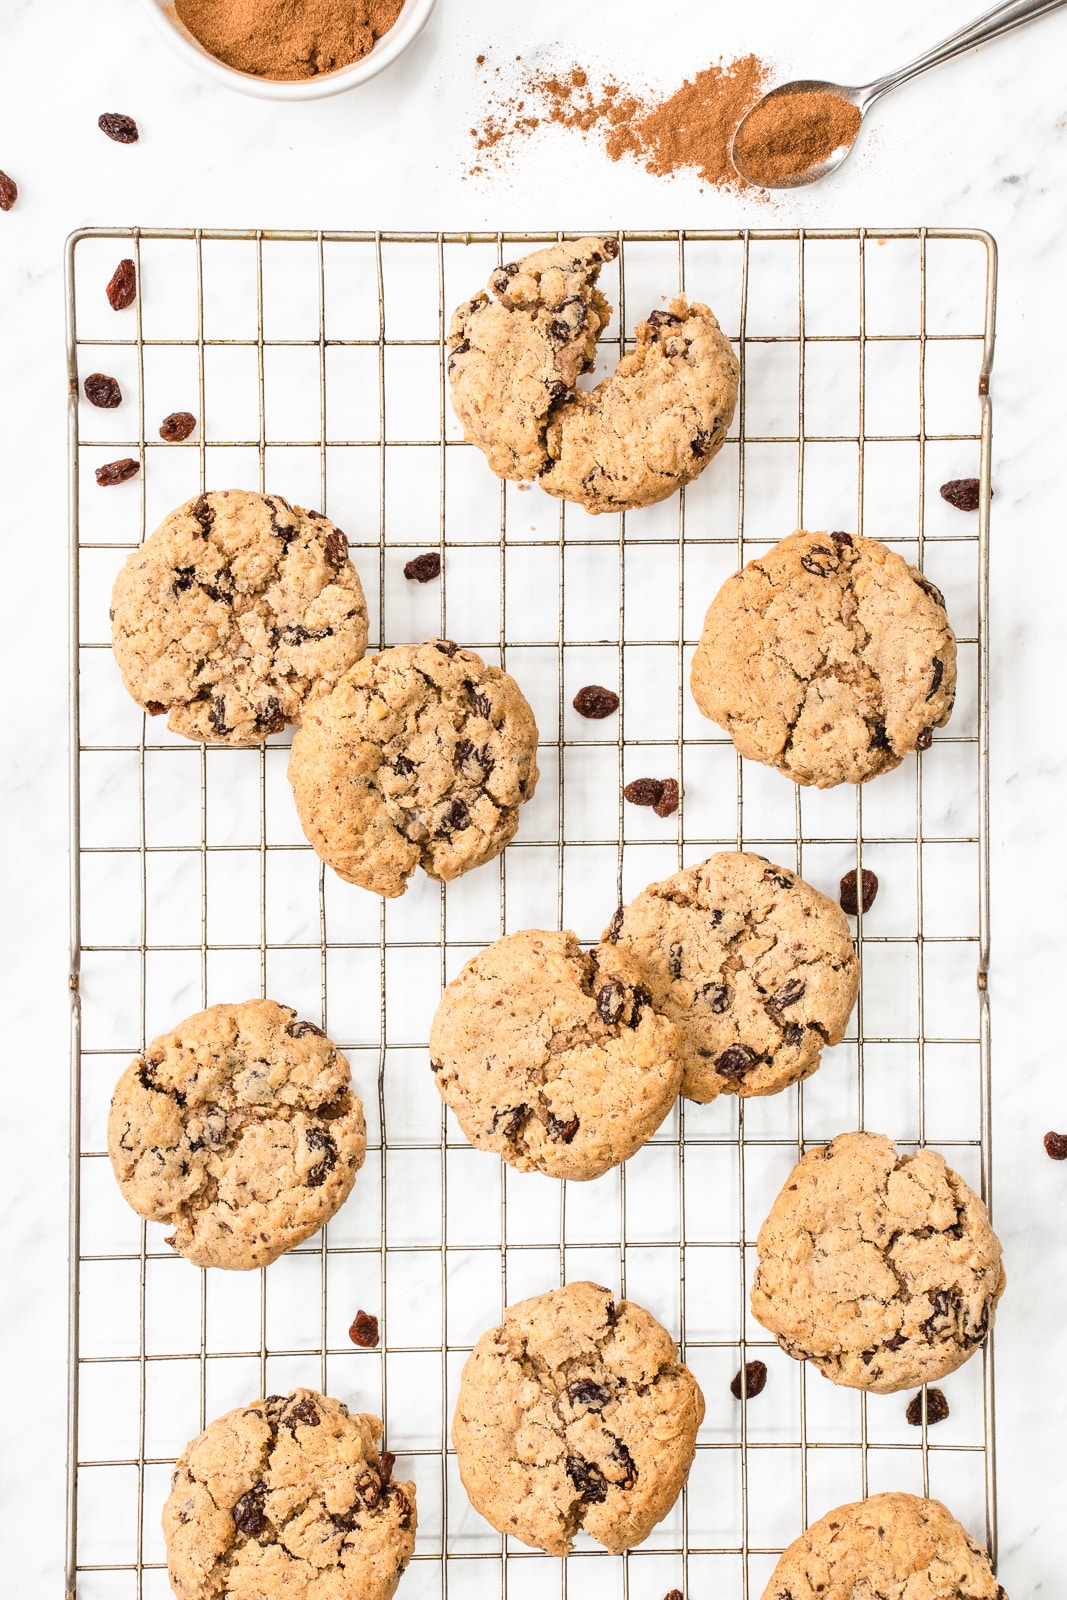 10 oatmeal raisin cookies on a cooling rack next to a pile of cinnamon